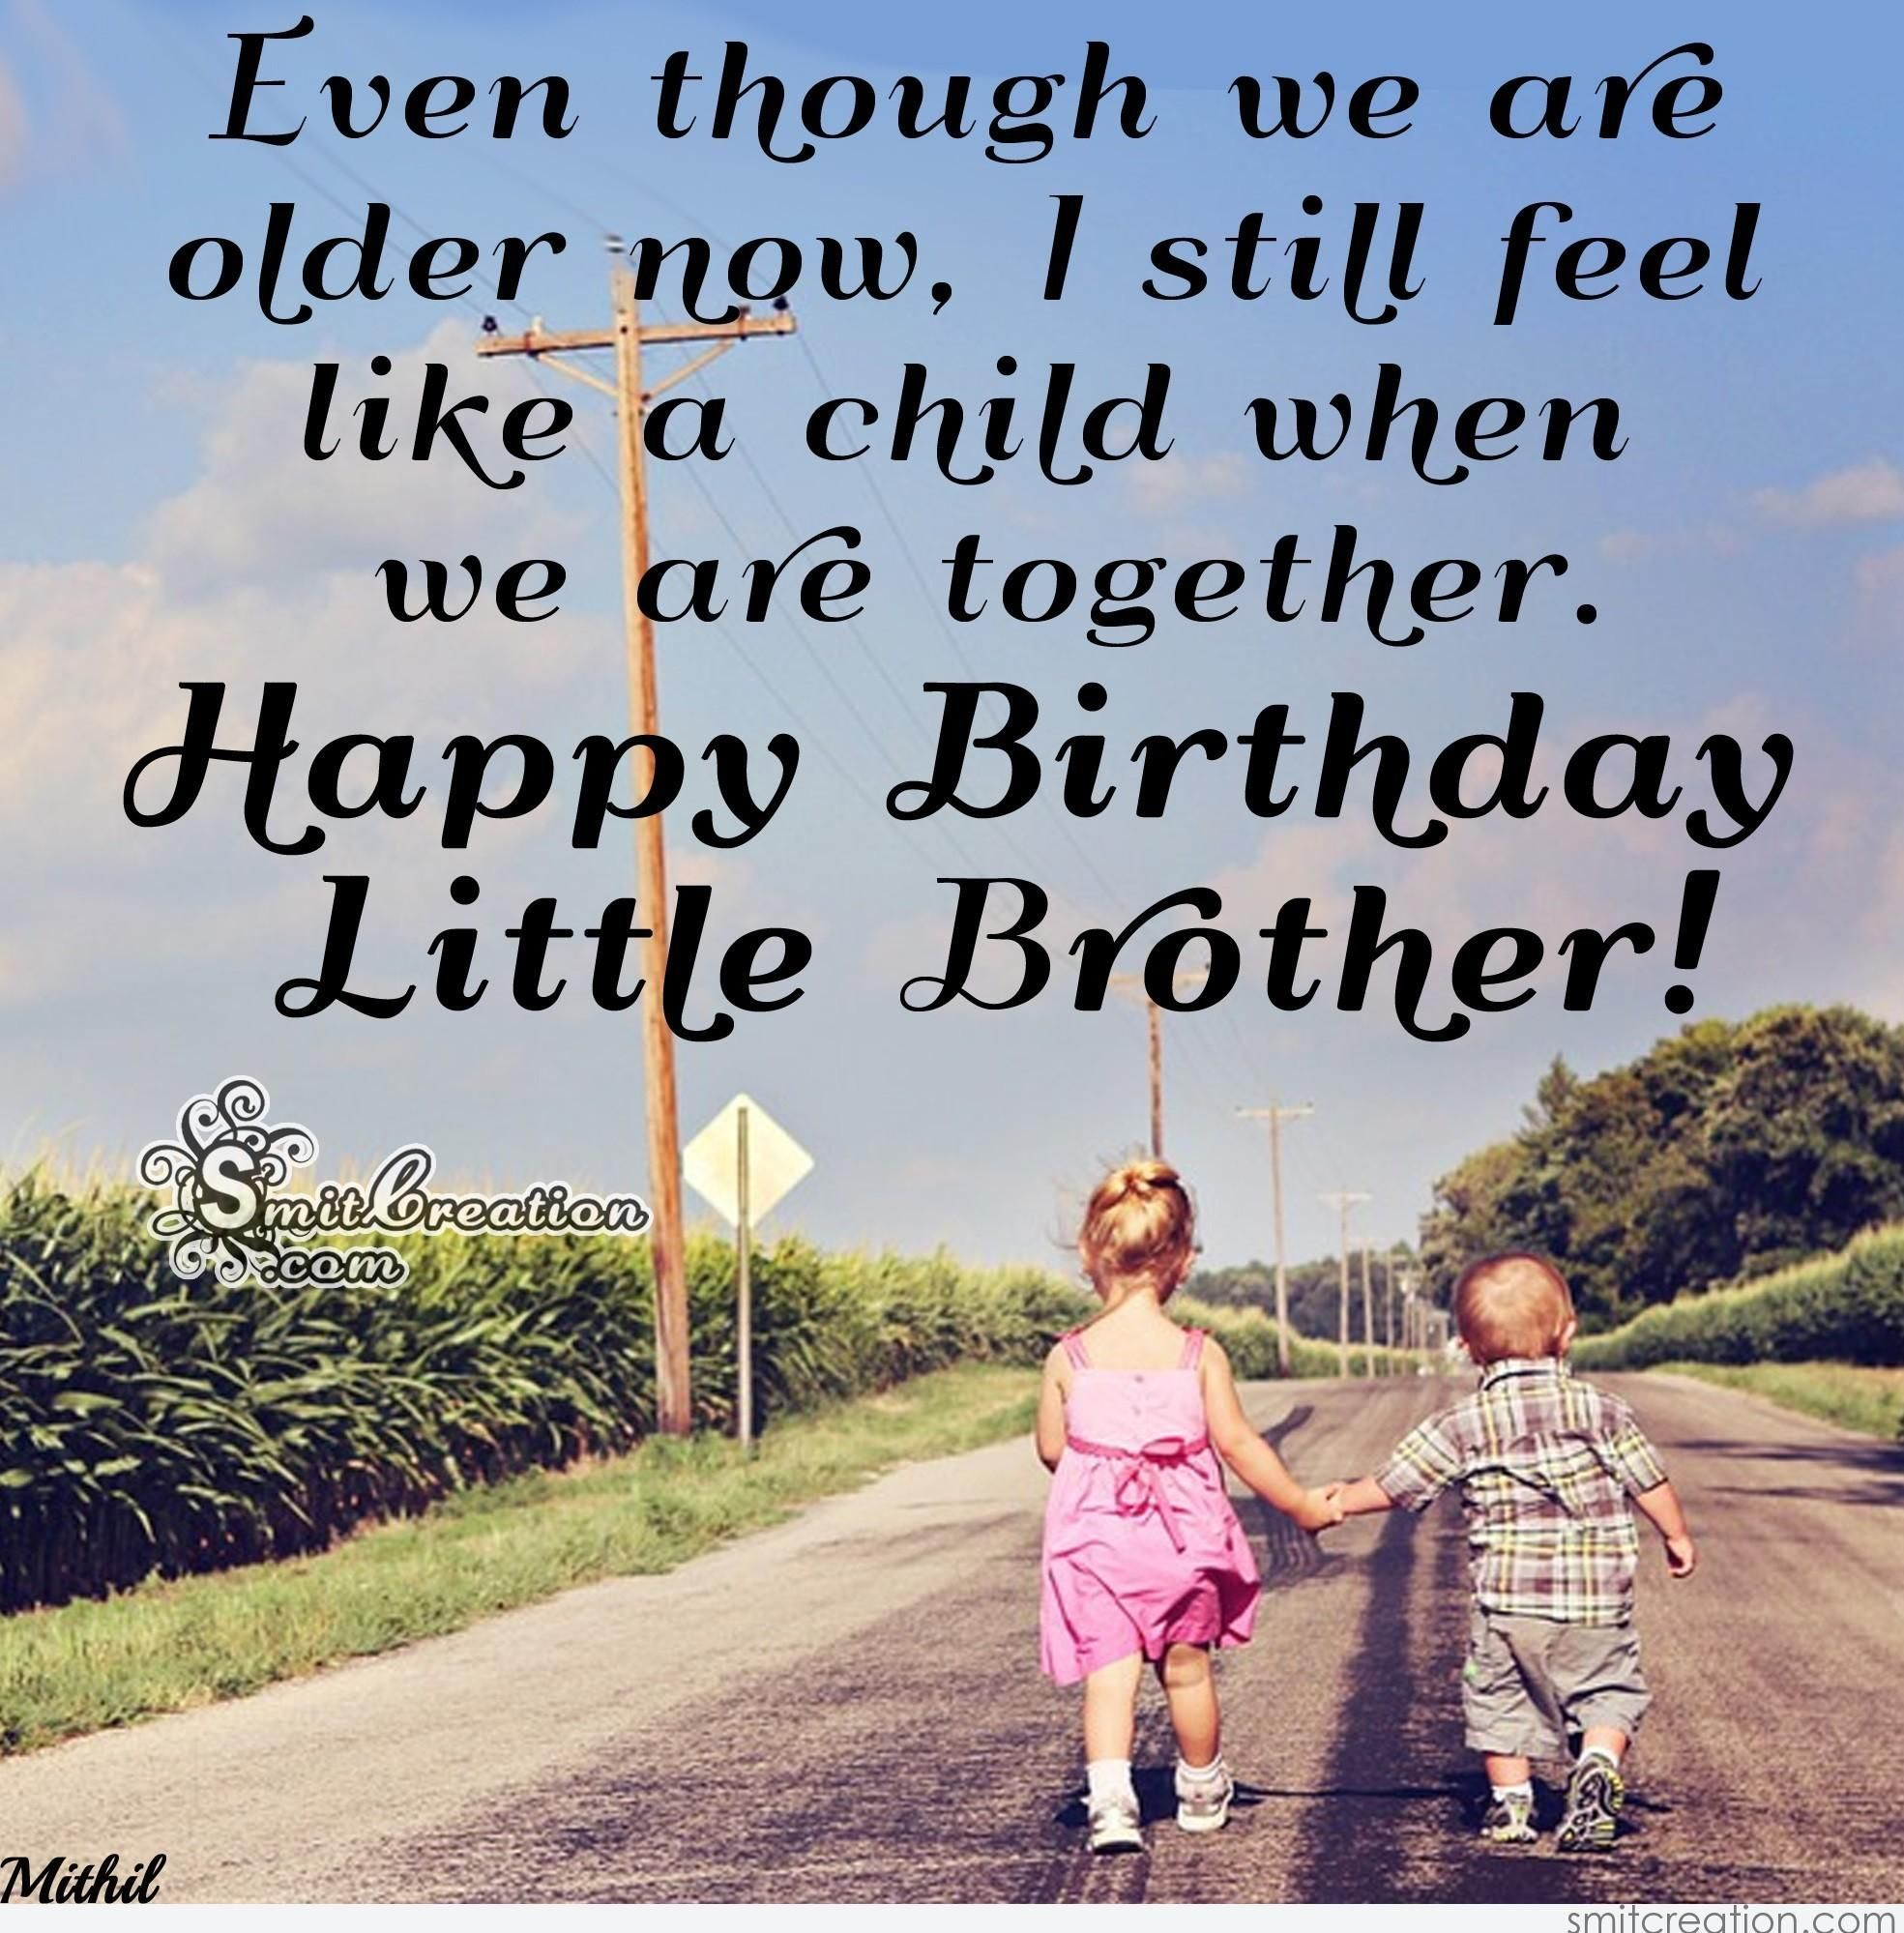 Birthday Wishes For Younger Sister Happy Birthday Little Brother Happy Birthday Younger Brother Happy Birthday Baby Brother